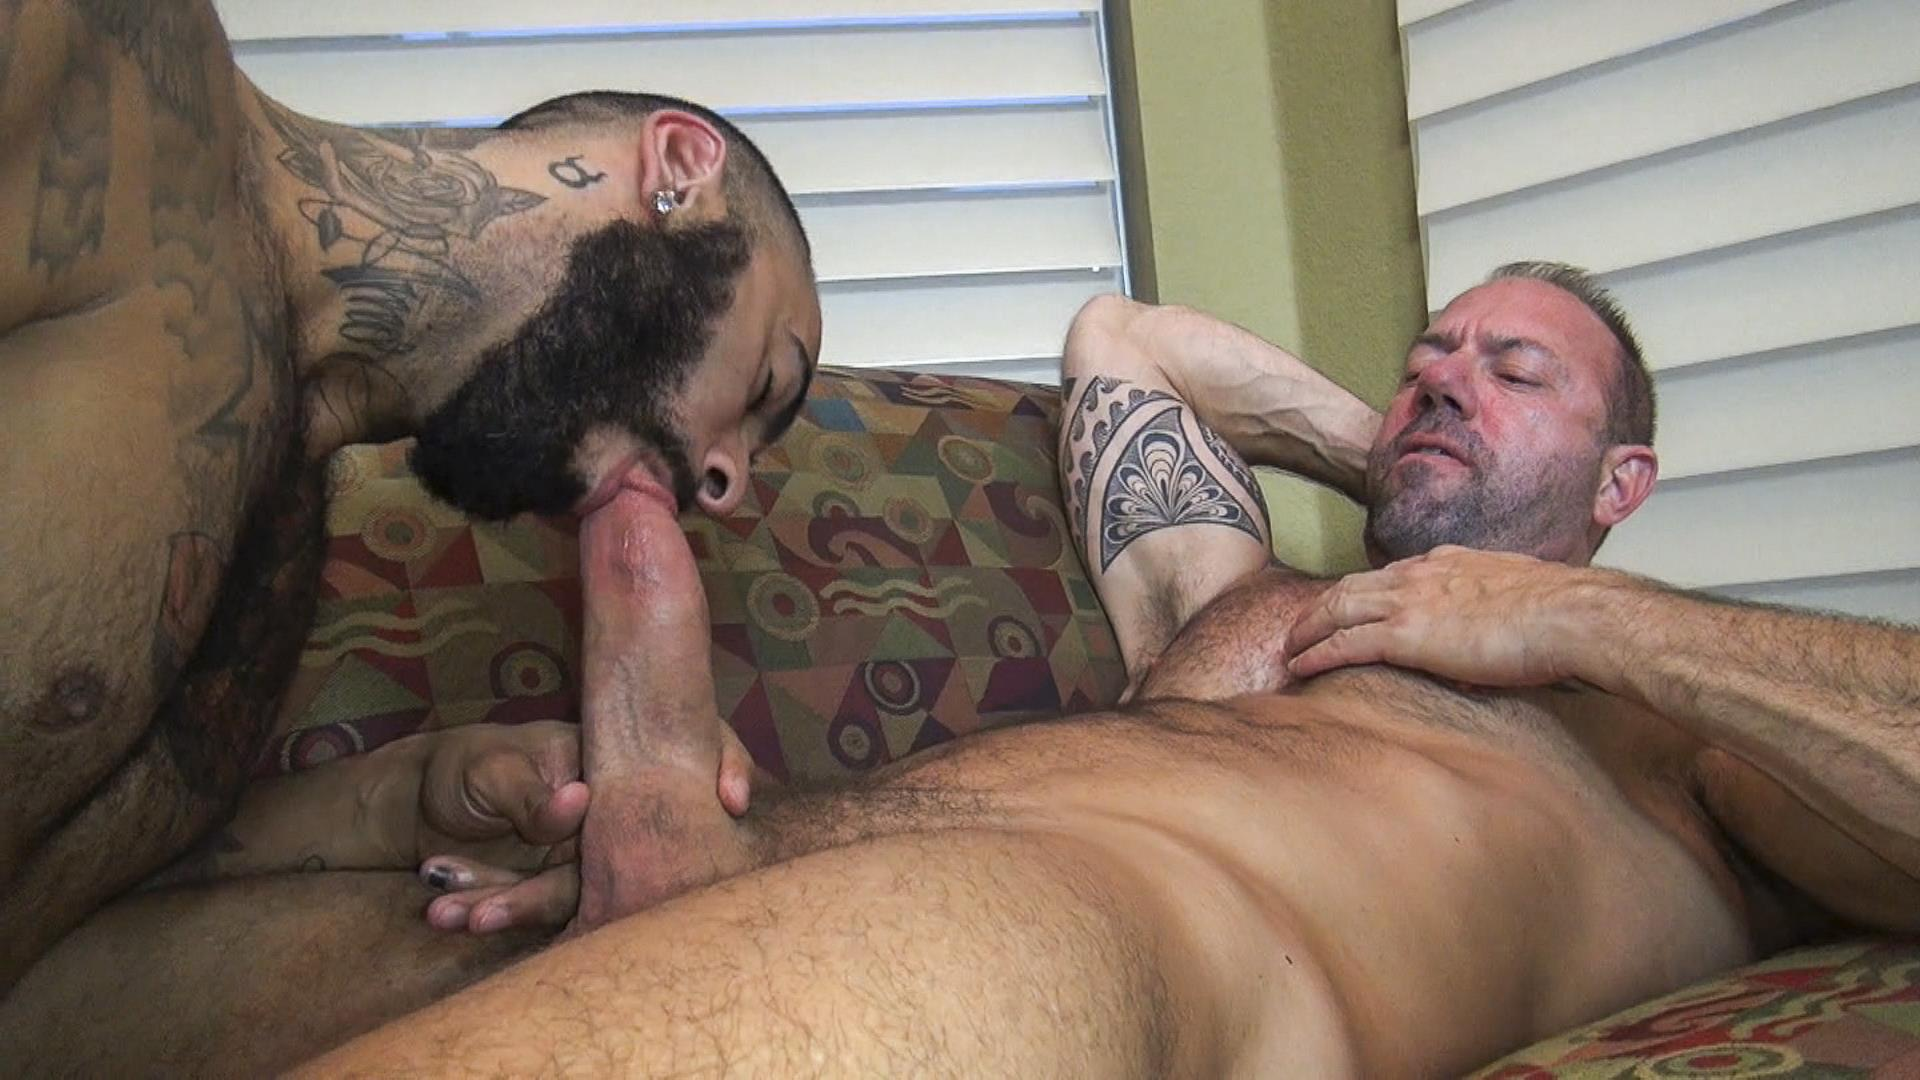 Raw-Fuck-Club-Vic-Rocco-and-Rikk-York-and-Billy-Warren-and-Job-Galt-Bareback-Daddy-Amateur-Gay-Porn-02 Four Hairy Muscle Daddies In A Bareback Fuck Fest Orgy